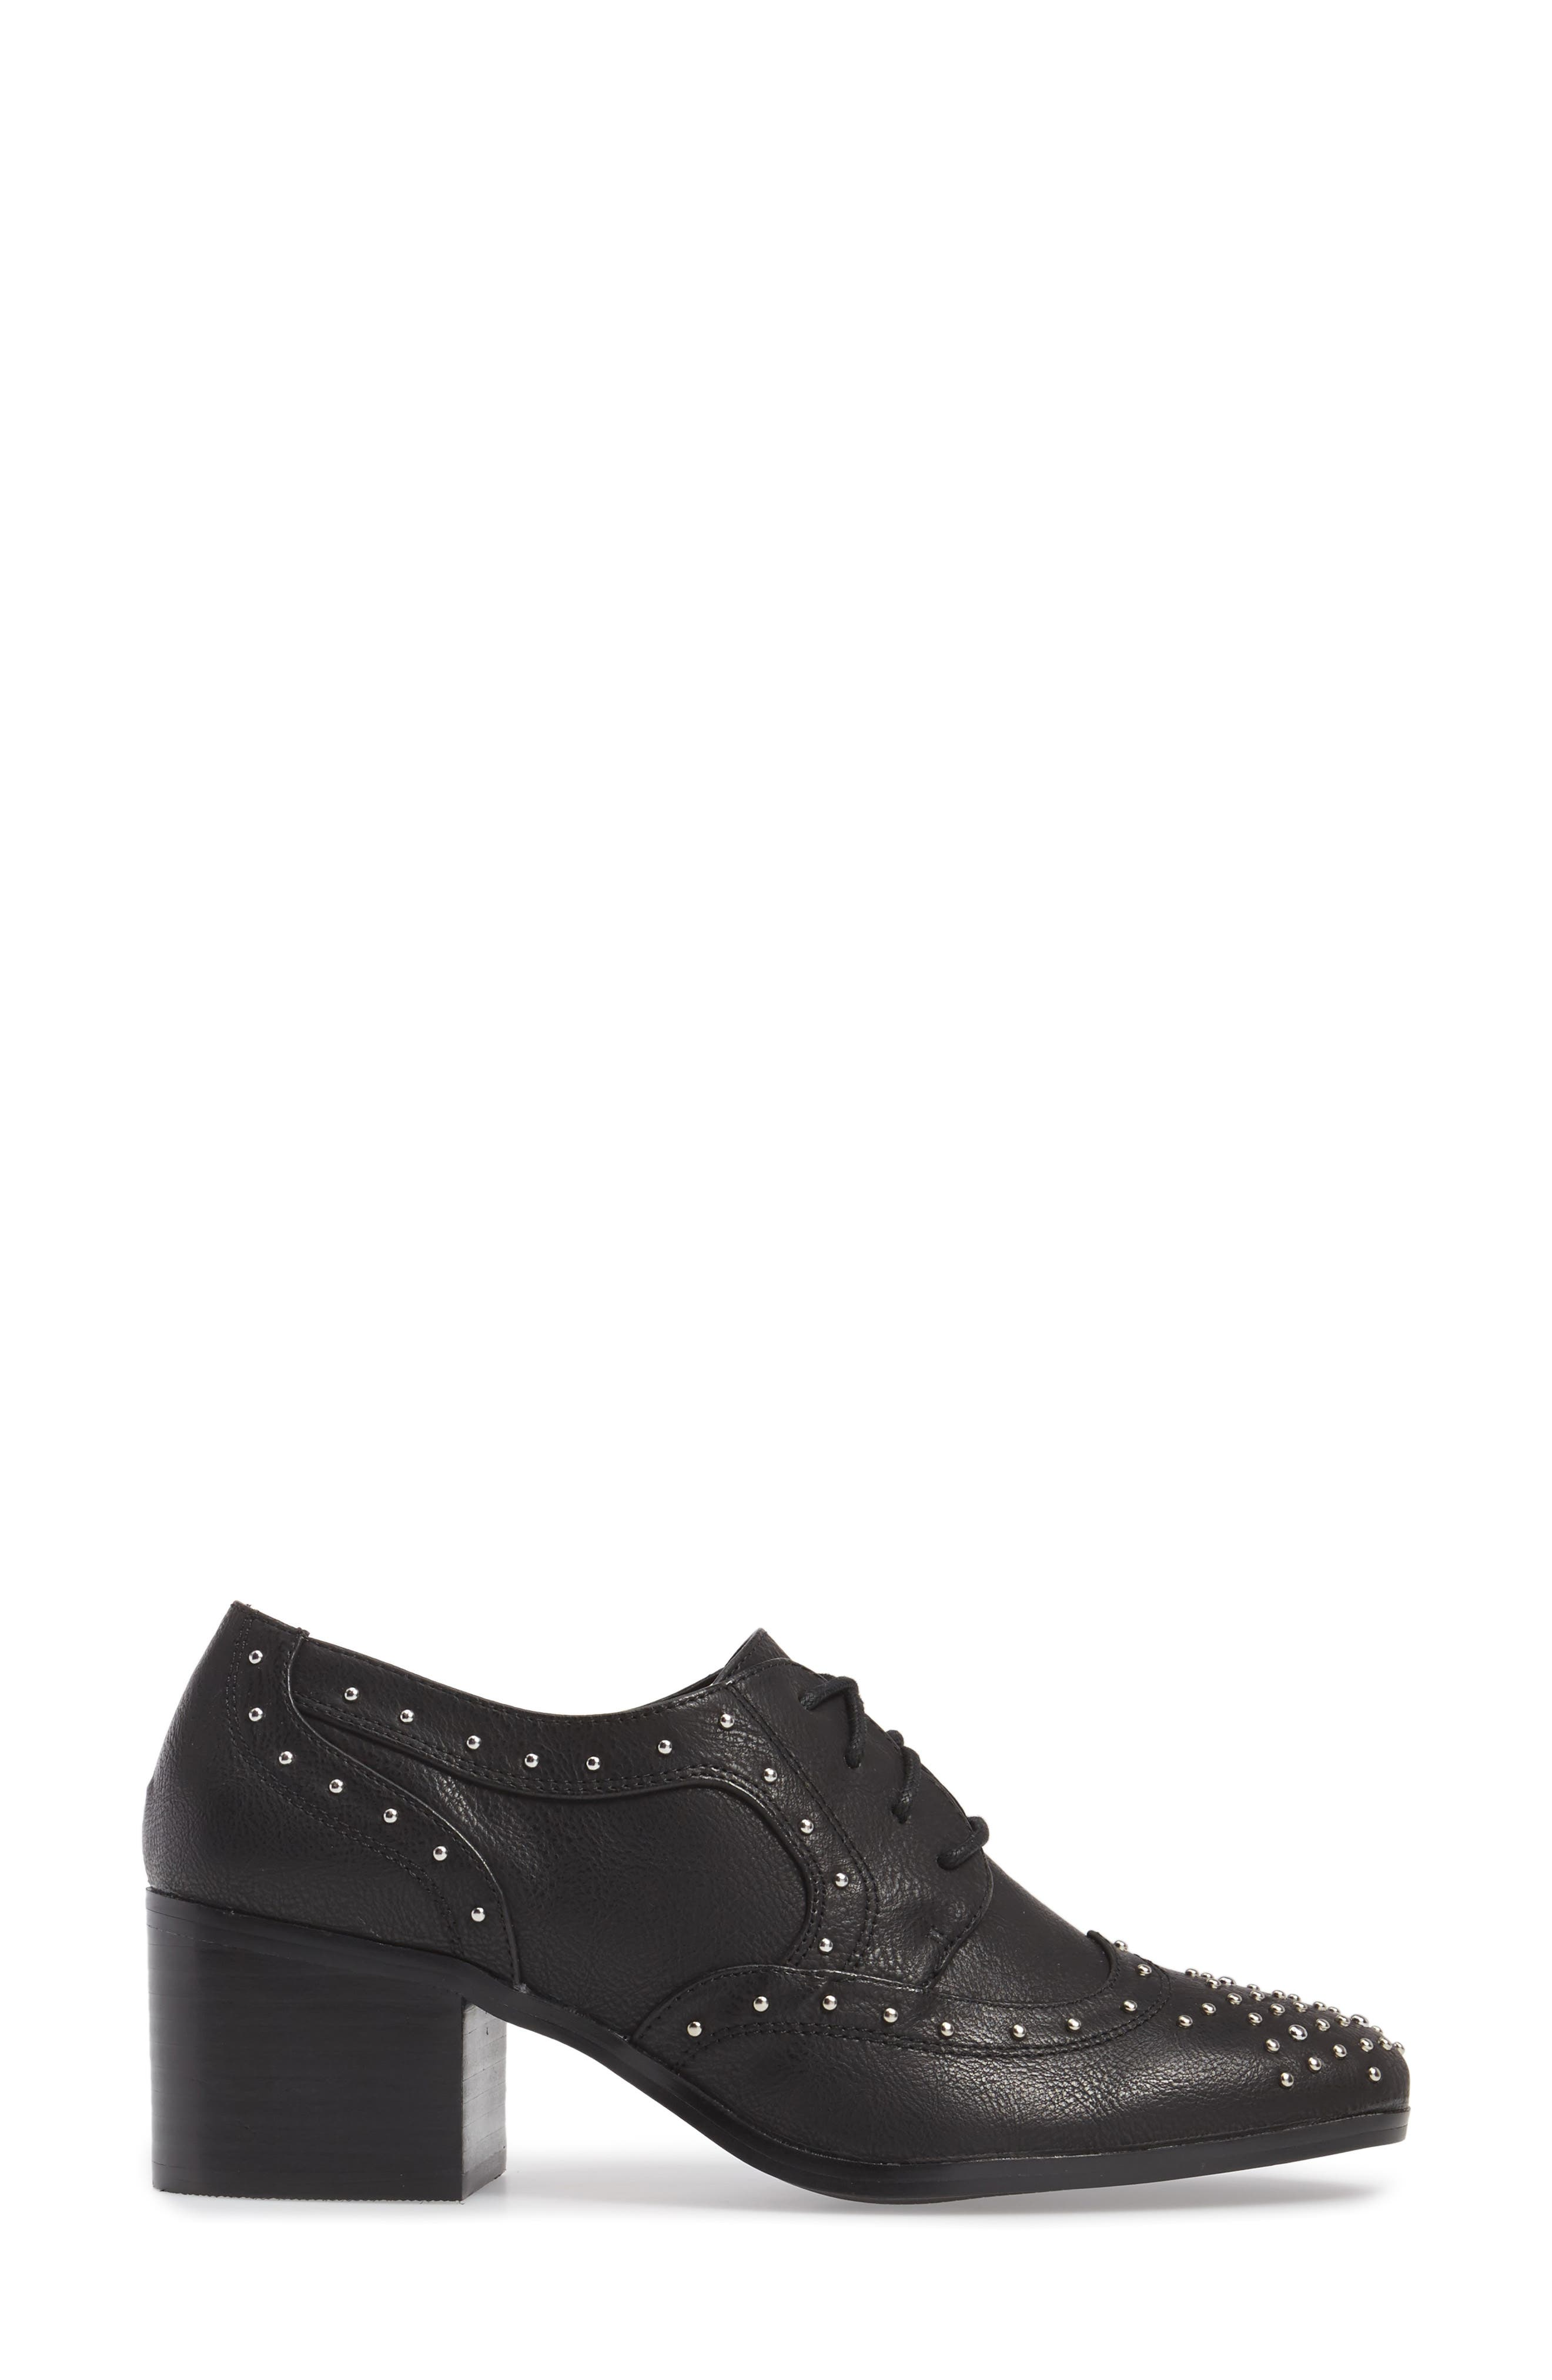 Alternate Image 3  - Coconuts by Matisse Fleur Studded Oxford Pump (Women)